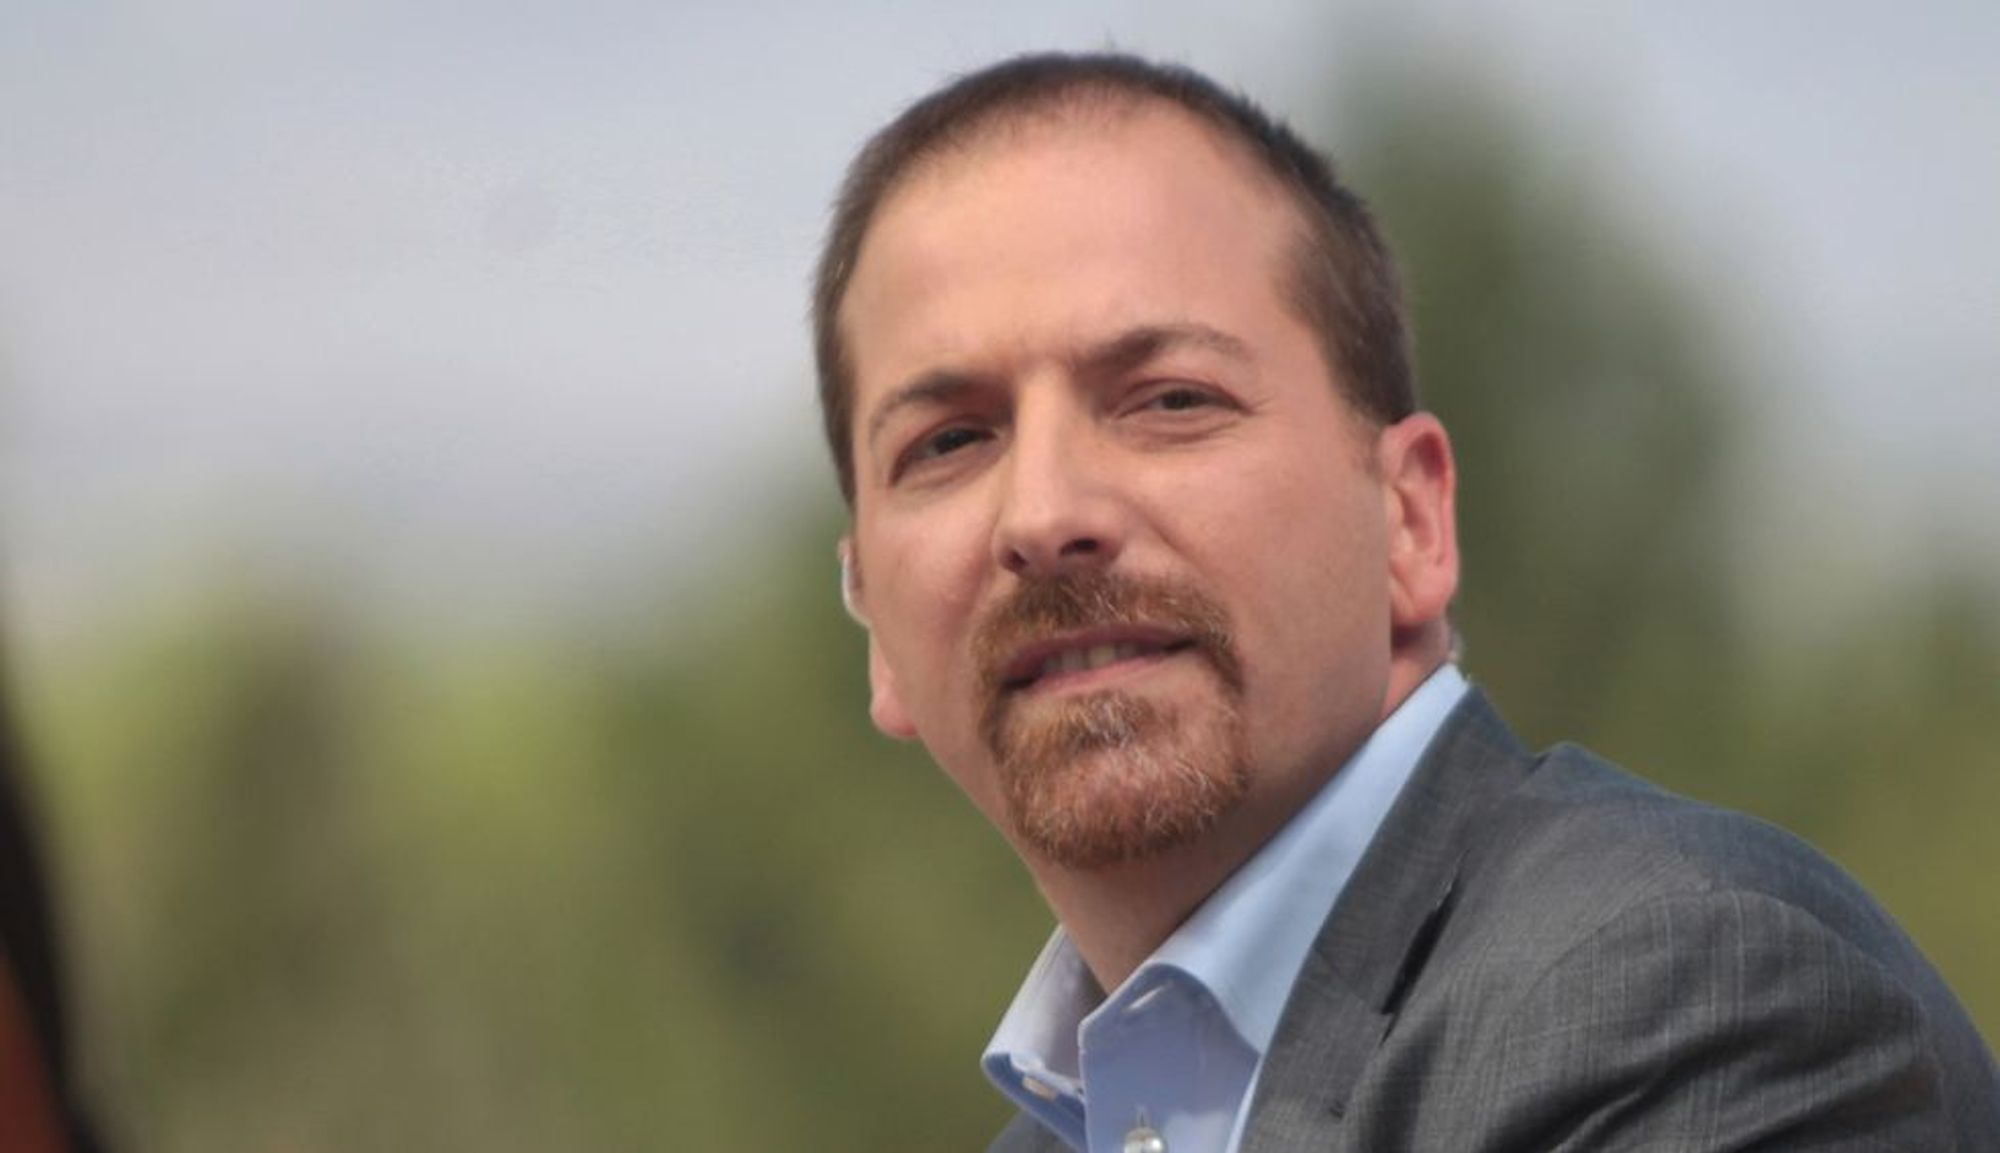 Chuck Todd now realizes he's being used for propaganda. What happens next?